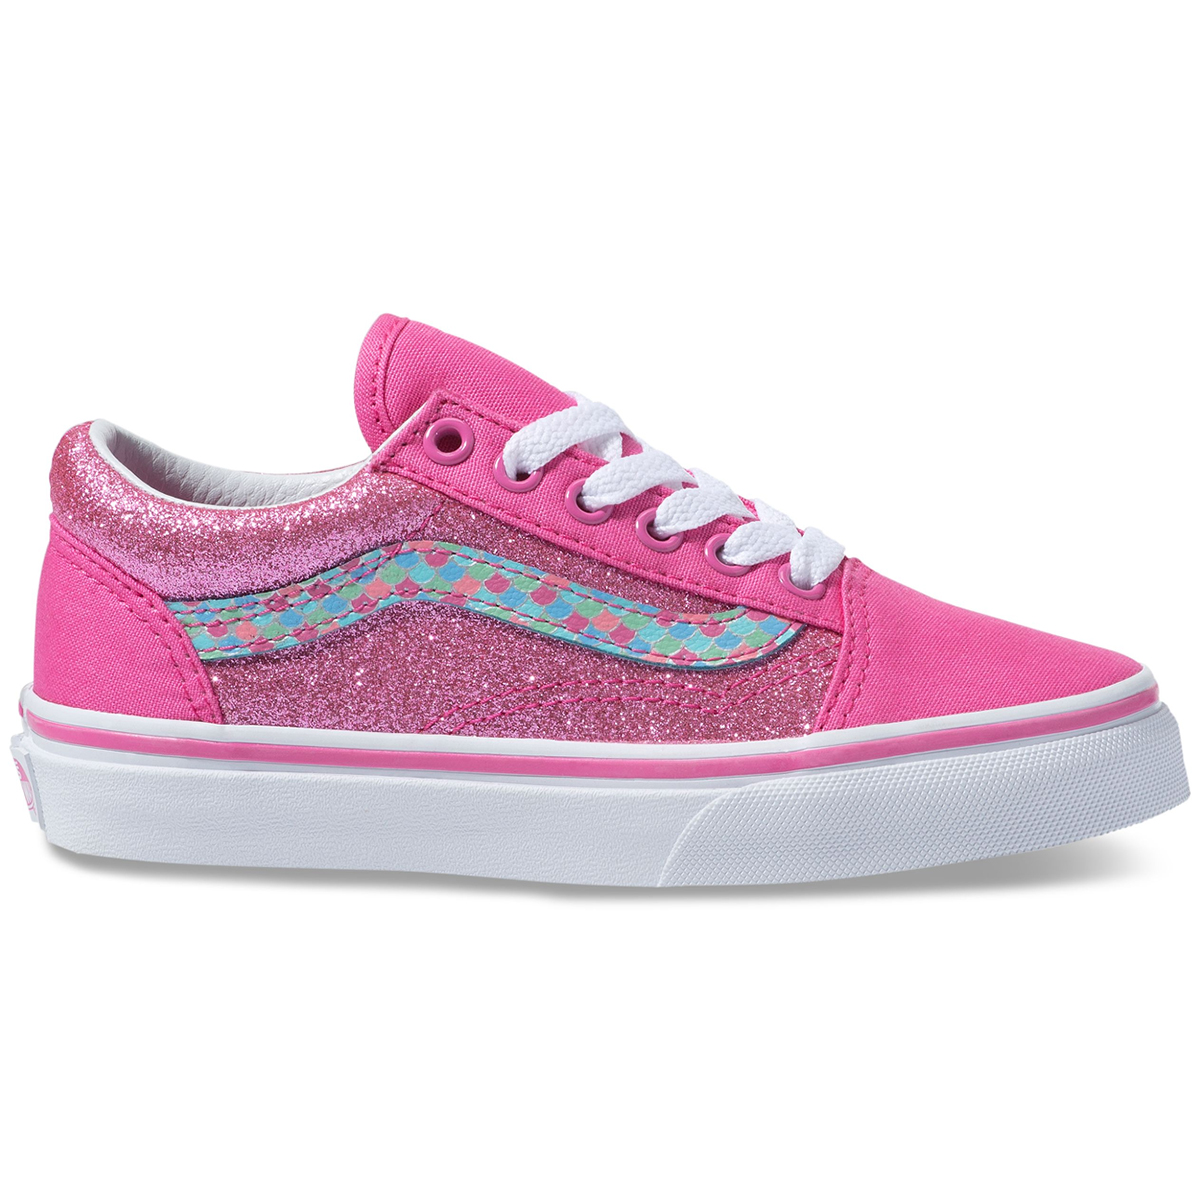 Vans Big Girls' Old Skool Mermaid Scales Sneakers - Red, 3